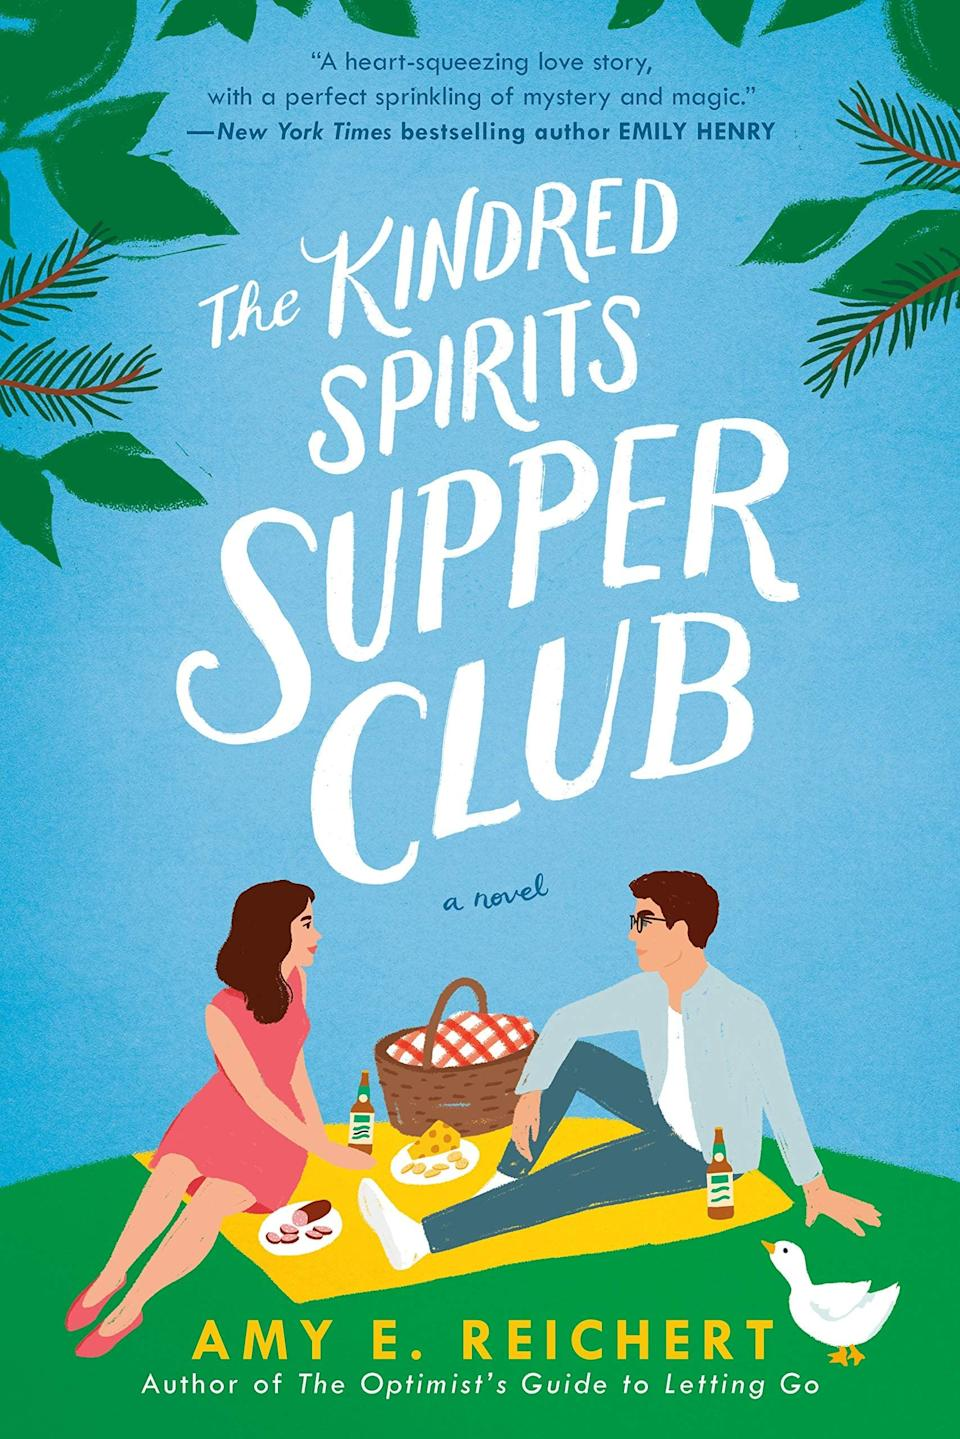 <p>More quirky than strange and cute than creepy, this story includes a few friendly spirits that will make any ghost believer smile. In <span><strong>The Kindred Spirits Supper Club</strong> by Amy E. Reichert</span> ($14), Sabrina Monroe has always felt alienated because of the family curse that allows her to see ghosts. While her mom acts as a spirit medium, Sabrina wants nothing to do with the family business. But it isn't until she meets Ray Jasper, the owner of the local supper club, that she starts to realize that maybe being different isn't so bad.</p> <p>From awkward, anxious Sabrina to sweetly determined Ray to sassy Molly, this story is full of endearing characters! The ghost side stories are fun and add that little something extra to the small-town romance.</p> <p><em>Out April 20</em></p>